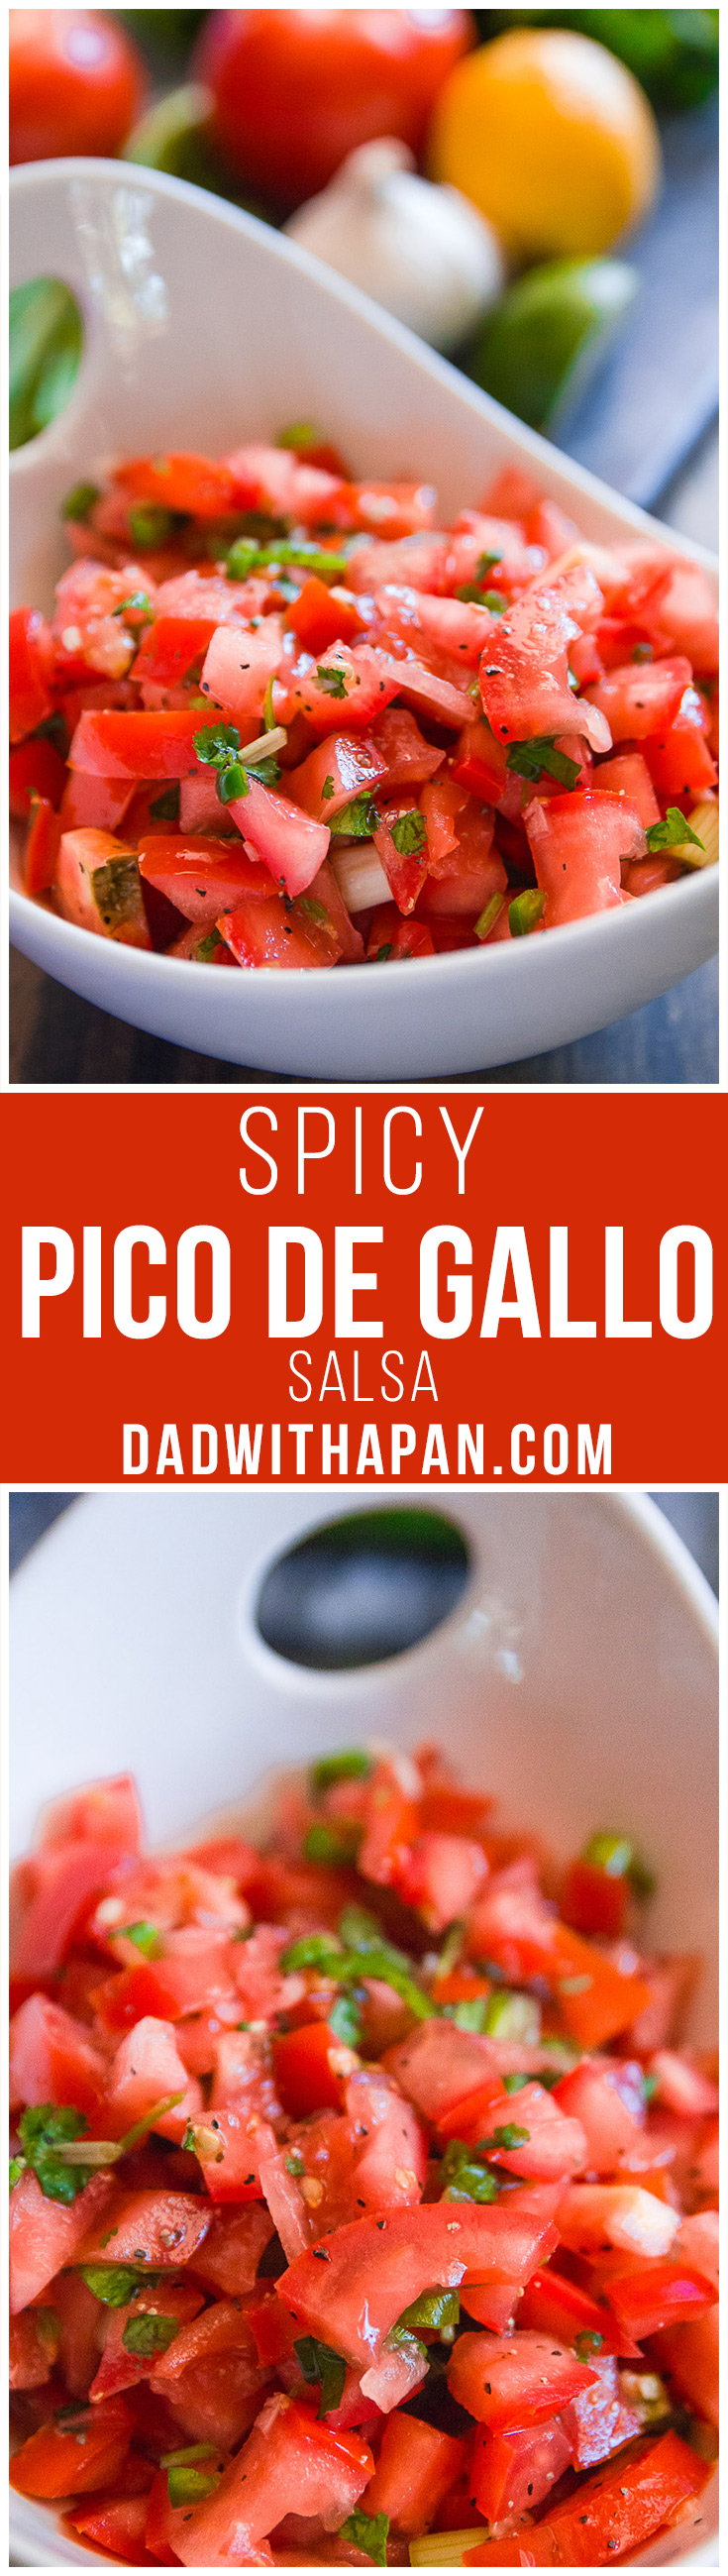 Spicy Pico De Gallo #Salsa #Tomatoes #Jalapeno